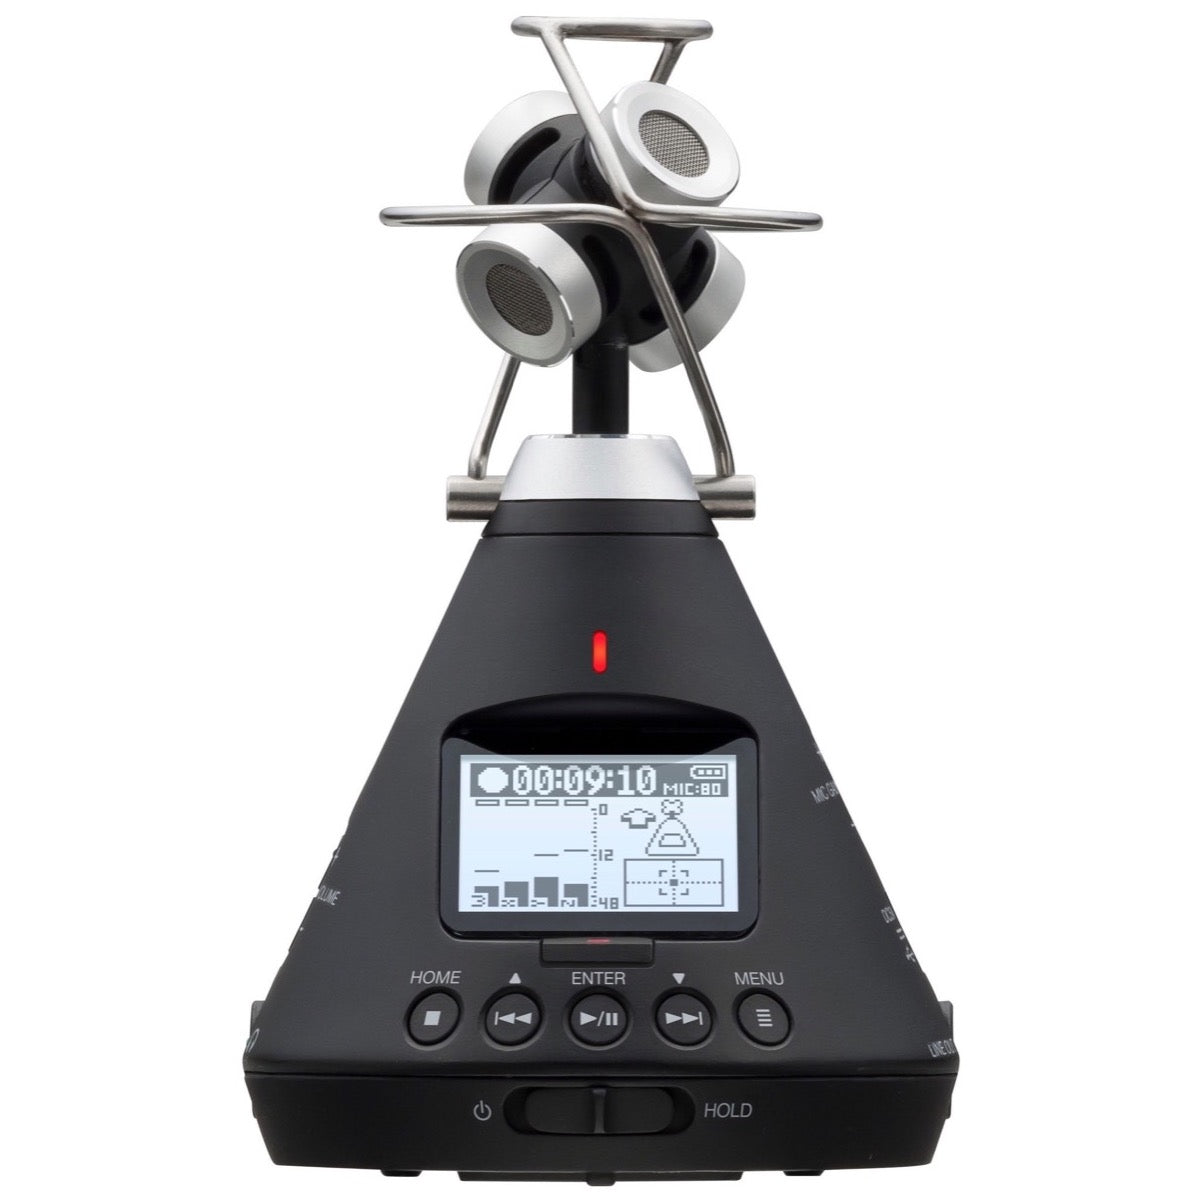 Zoom H3-VR 360 Degree VR Ambisonic Portable Recorder